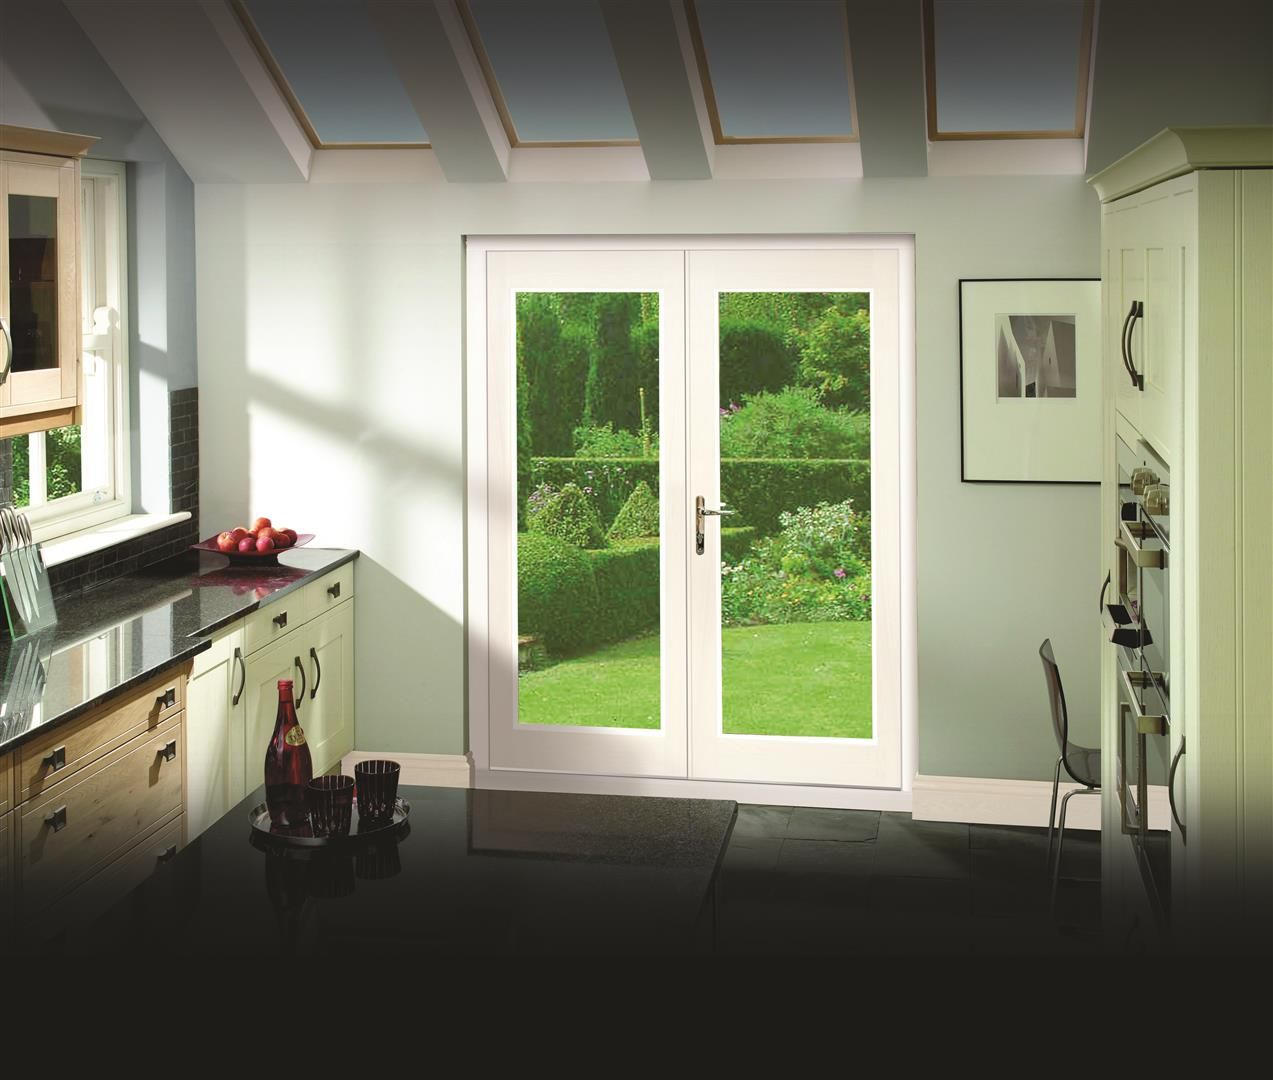 Xl joinery ext pre finished white 4 la porte french door for French doors 1190